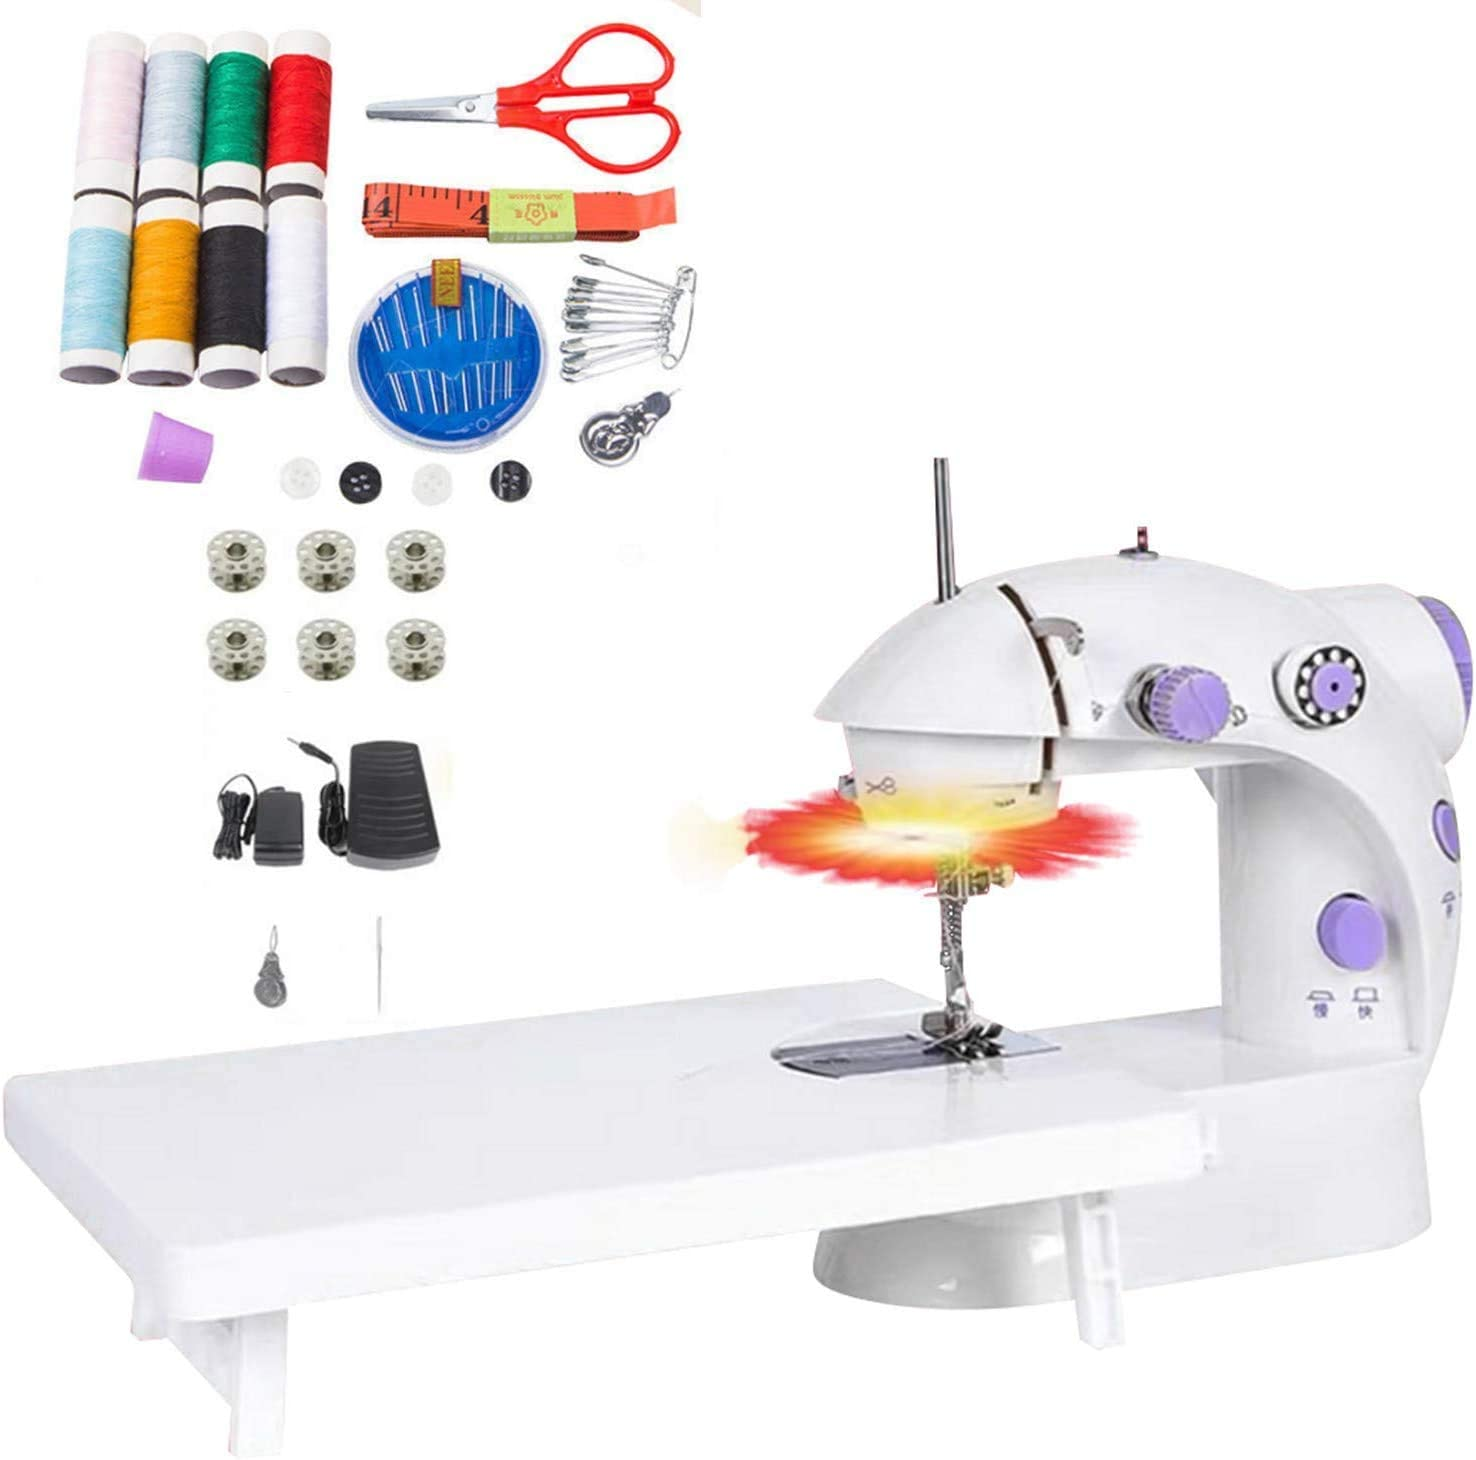 Mini Nippon regular agency Sewing Machine Small Size Mending Electric 25% OFF Crafting Machin